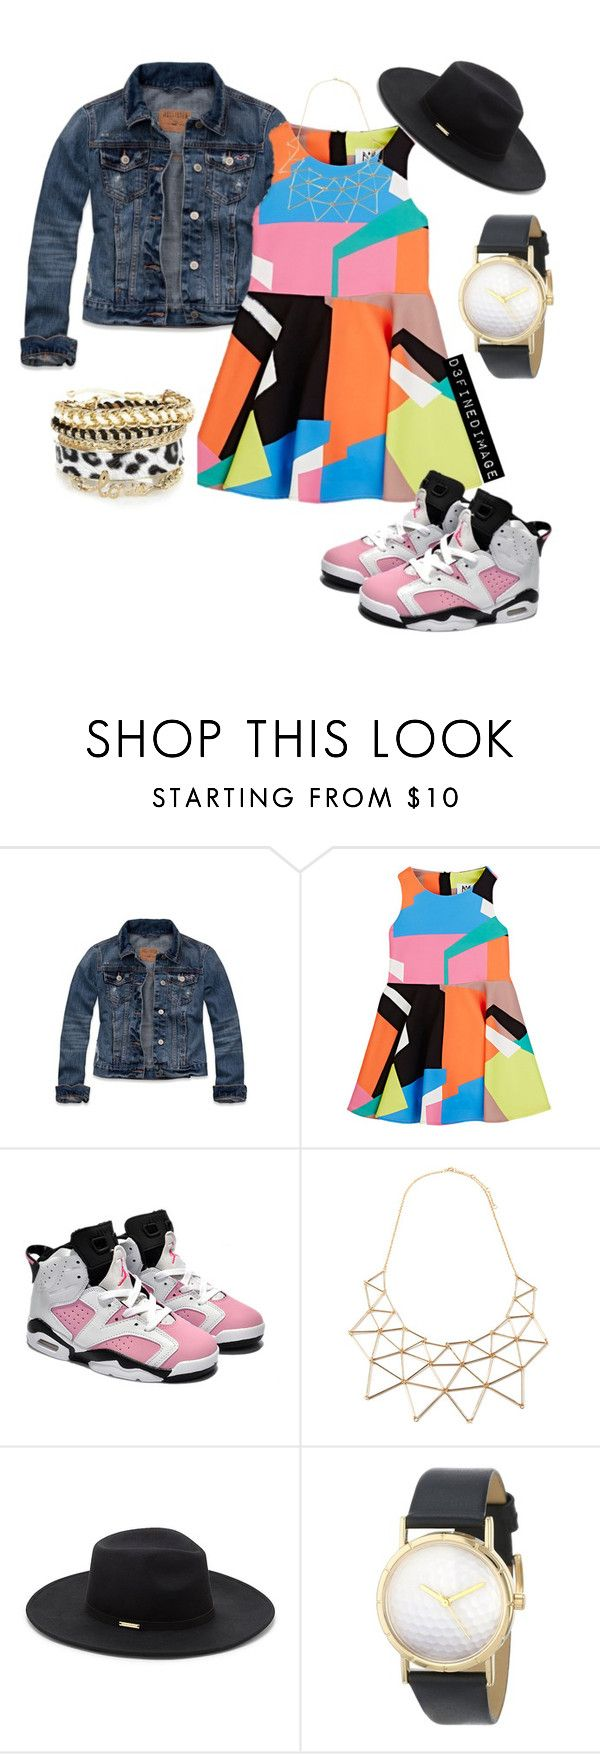 """""""Kid's Fashion"""" by d3finedimage on Polyvore featuring Hollister Co., Barneys New York, Retrò, Forever 21, Vince Camuto, Whimsical Watches, women's clothing, women's fashion, women and female"""